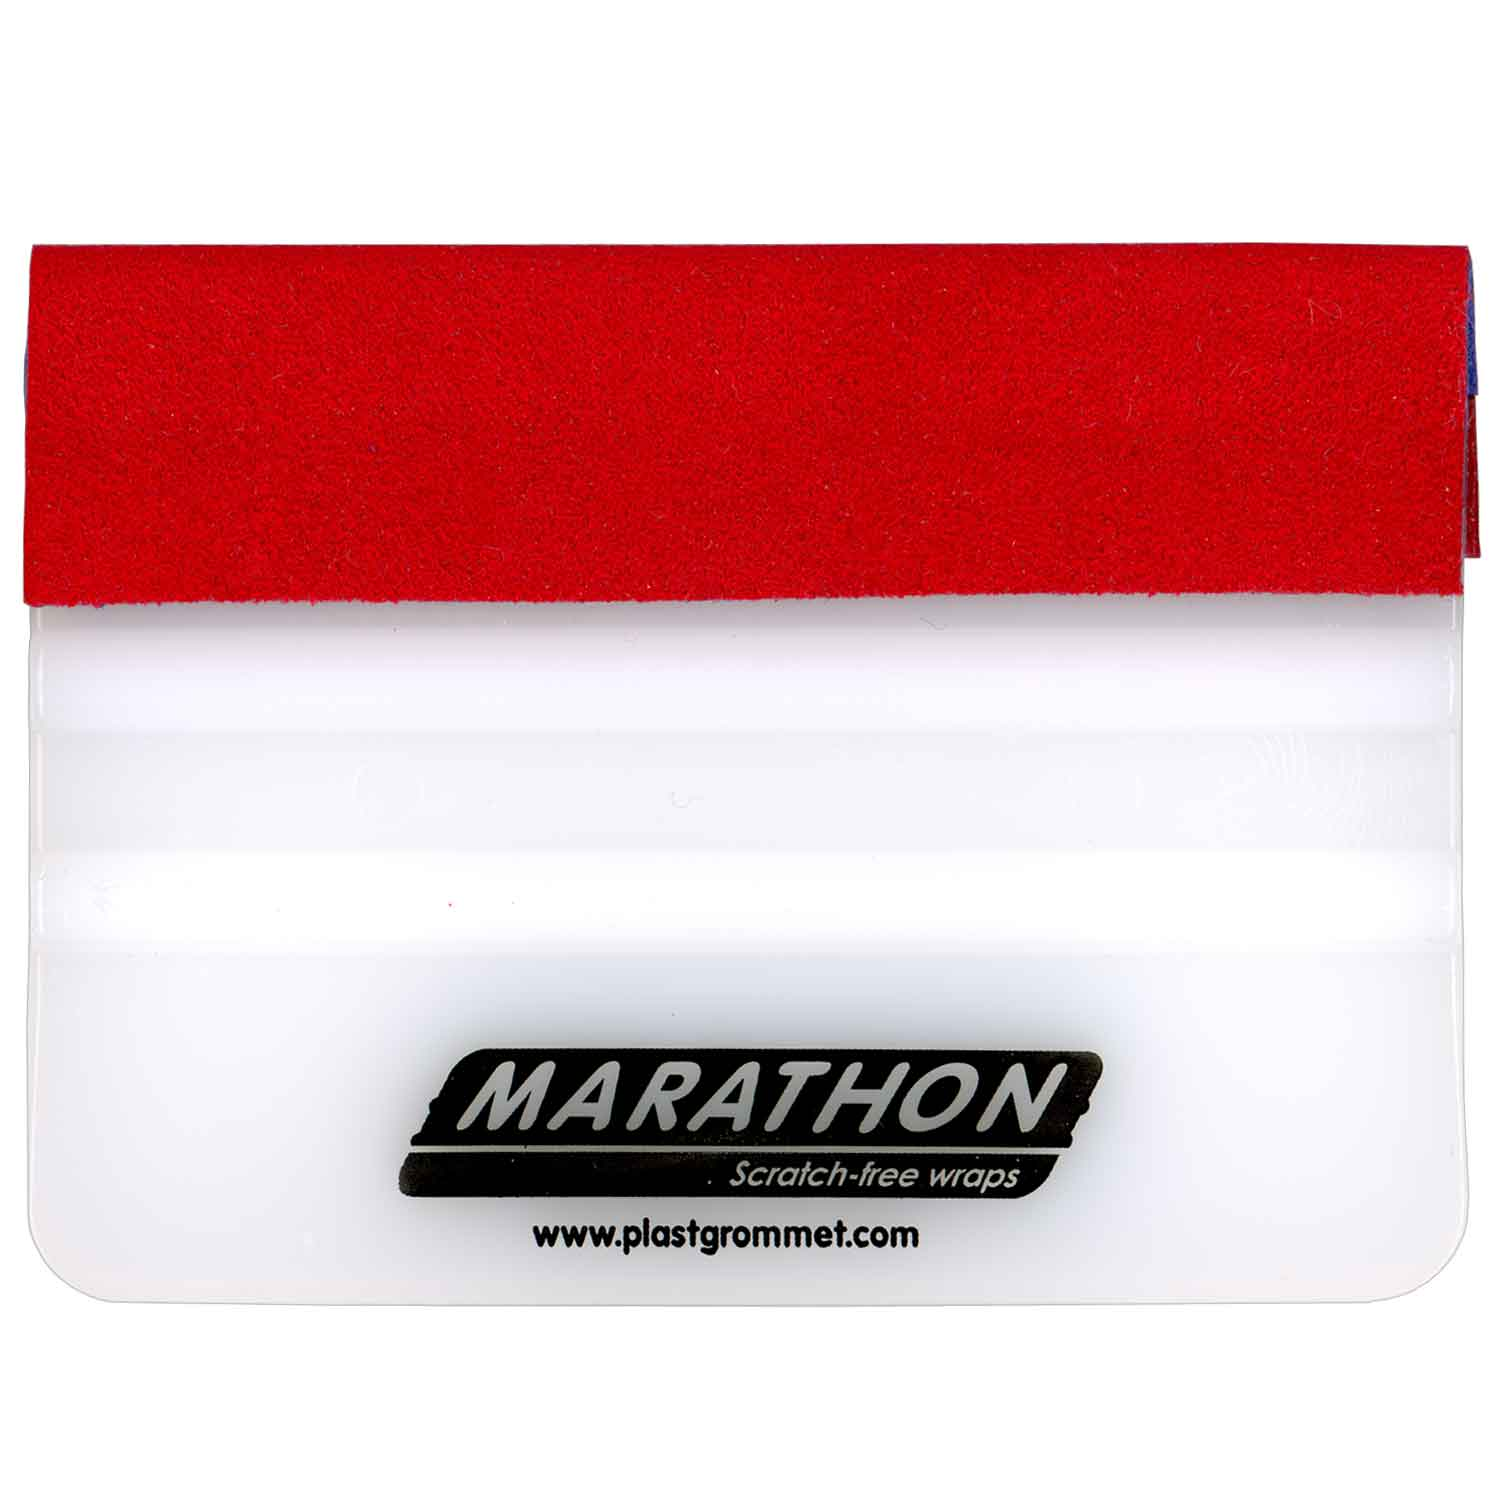 Marathon Teflon 100 Mm Wet Edge Squeegee Gm Crafts